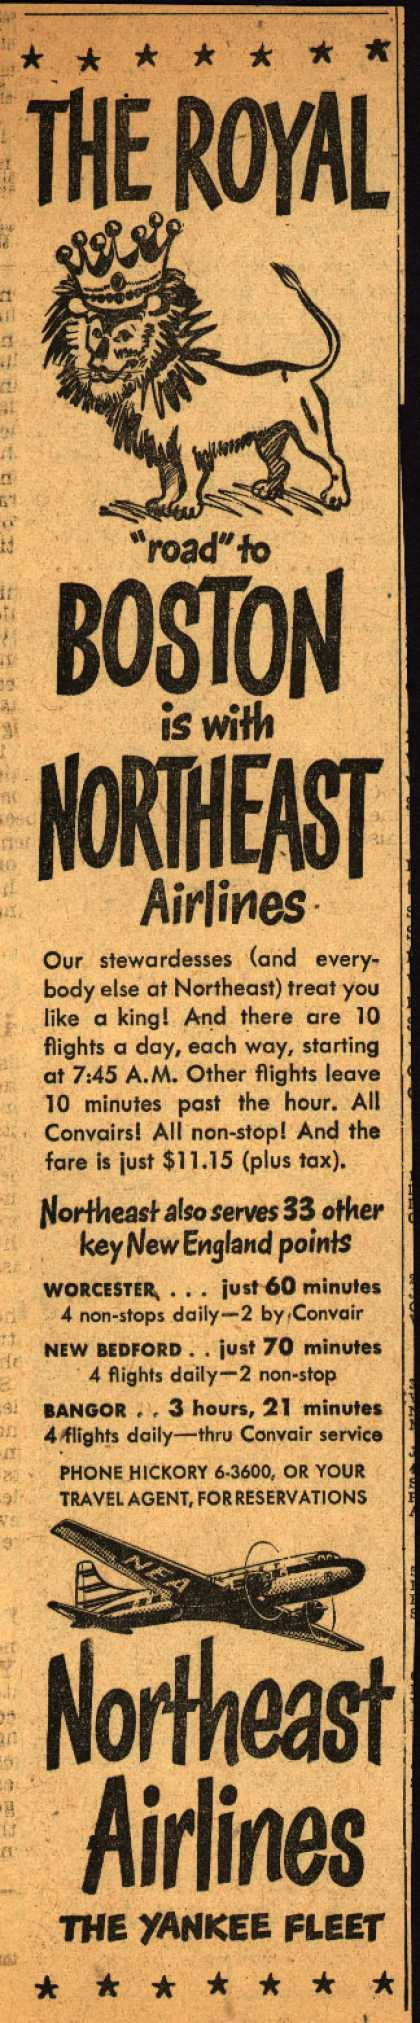 """Northeast Airline's Boston – THE ROYAL """"road"""" to BOSTON is with NORTHEAST Airlines (1950)"""